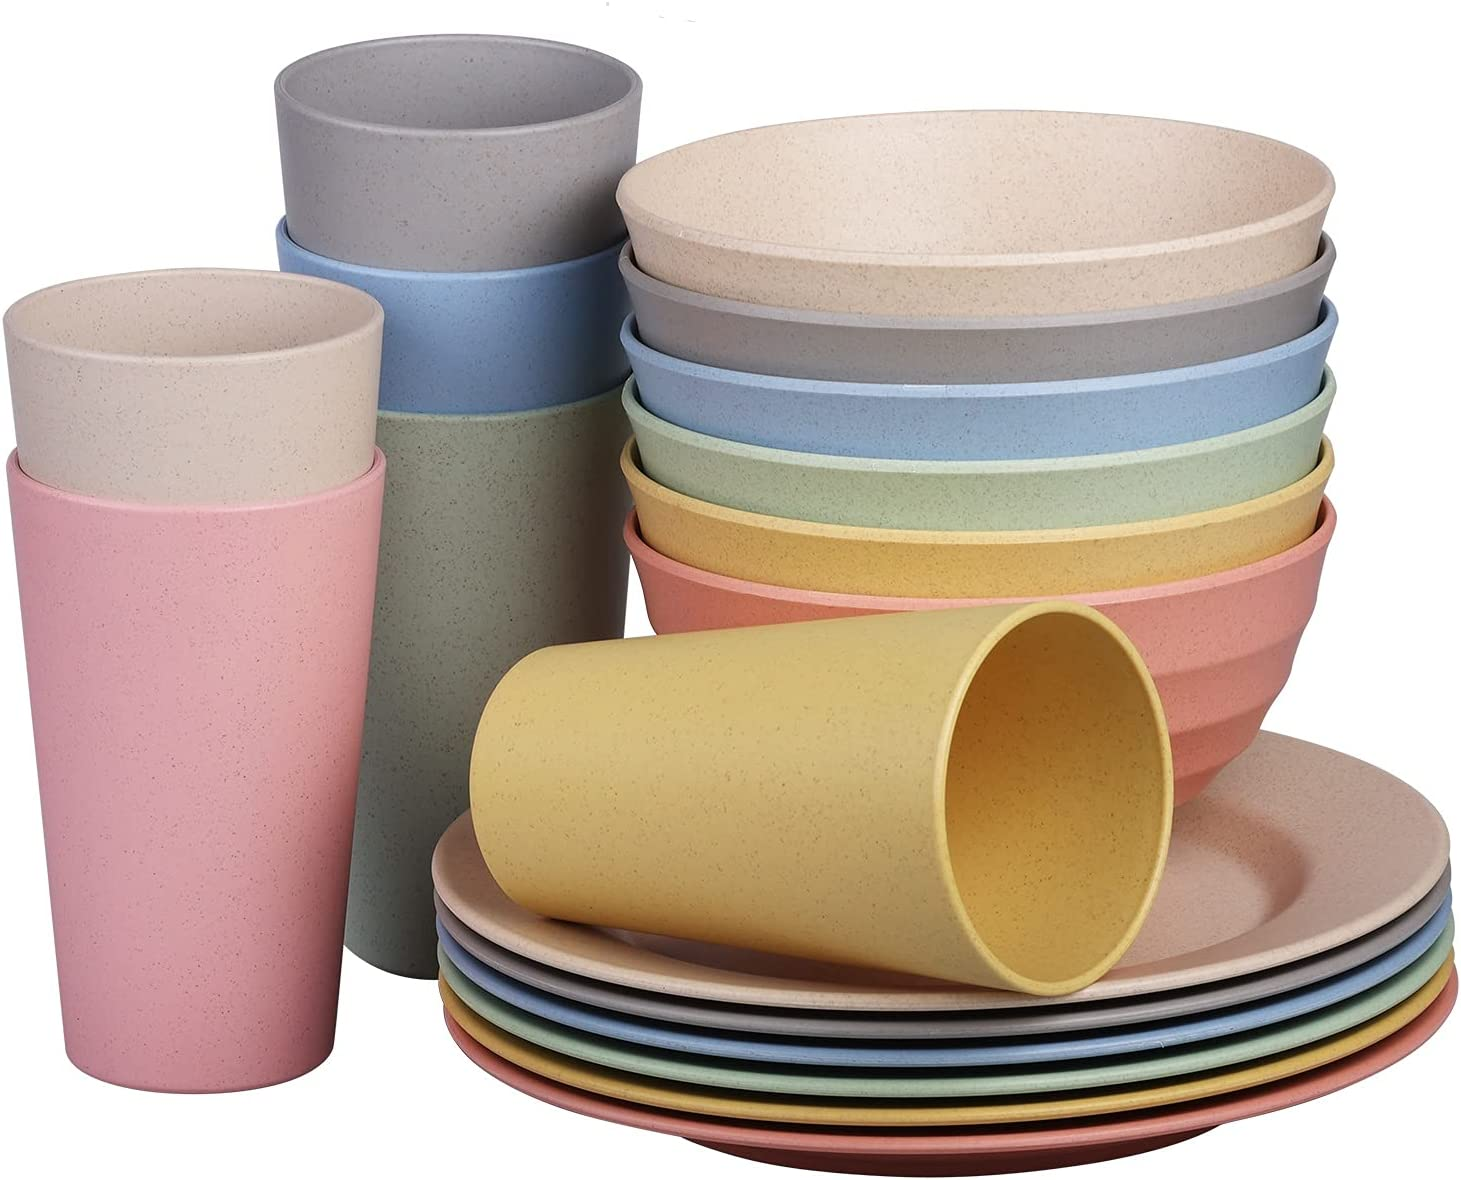 Cainfy Wheat Straw Plastic Dinnerware Cer Set 6 New mail order Unbreakable 5 ☆ very popular for